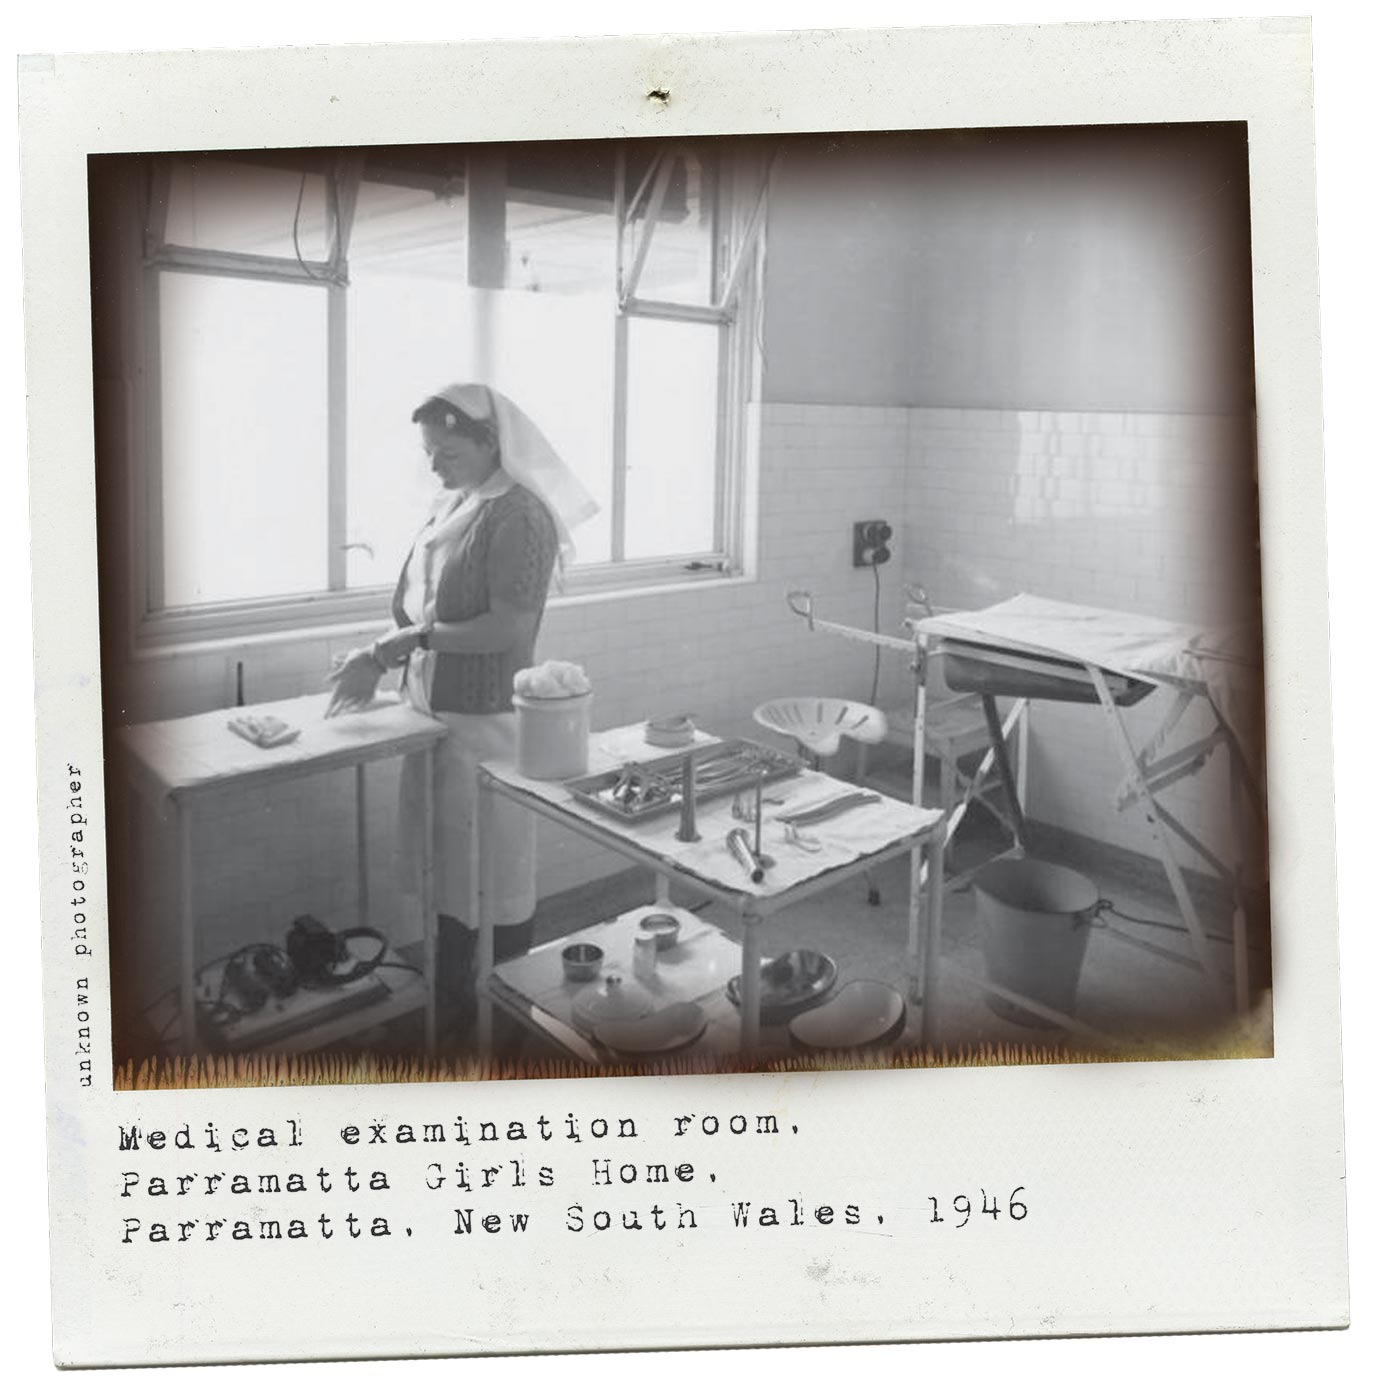 A black and white Polaroid photograph of a medical examination room.  In the room which has tiled walls and a large window there is a nurse, two medical equipment trolleys and an empty patient trolley. The nurse, in uniform and veil, is standing at one of the equipment trolleys and putting on a pair of gloves.  The other equipment trolley is laid out with medical instruments, swabs and dishes. There is a stool on wheels at the end of the patient trolley. The patient trolley has a bucket underneath it.  Typewritten text underneath the photograph reads: 'Medical examination room. Parramatta Girls Home. Parramatta. New South Wales, 1946'. Smaller text, on the left-hand side of the image, in a vertical direction, reads 'Unknown photographer'. - click to view larger image